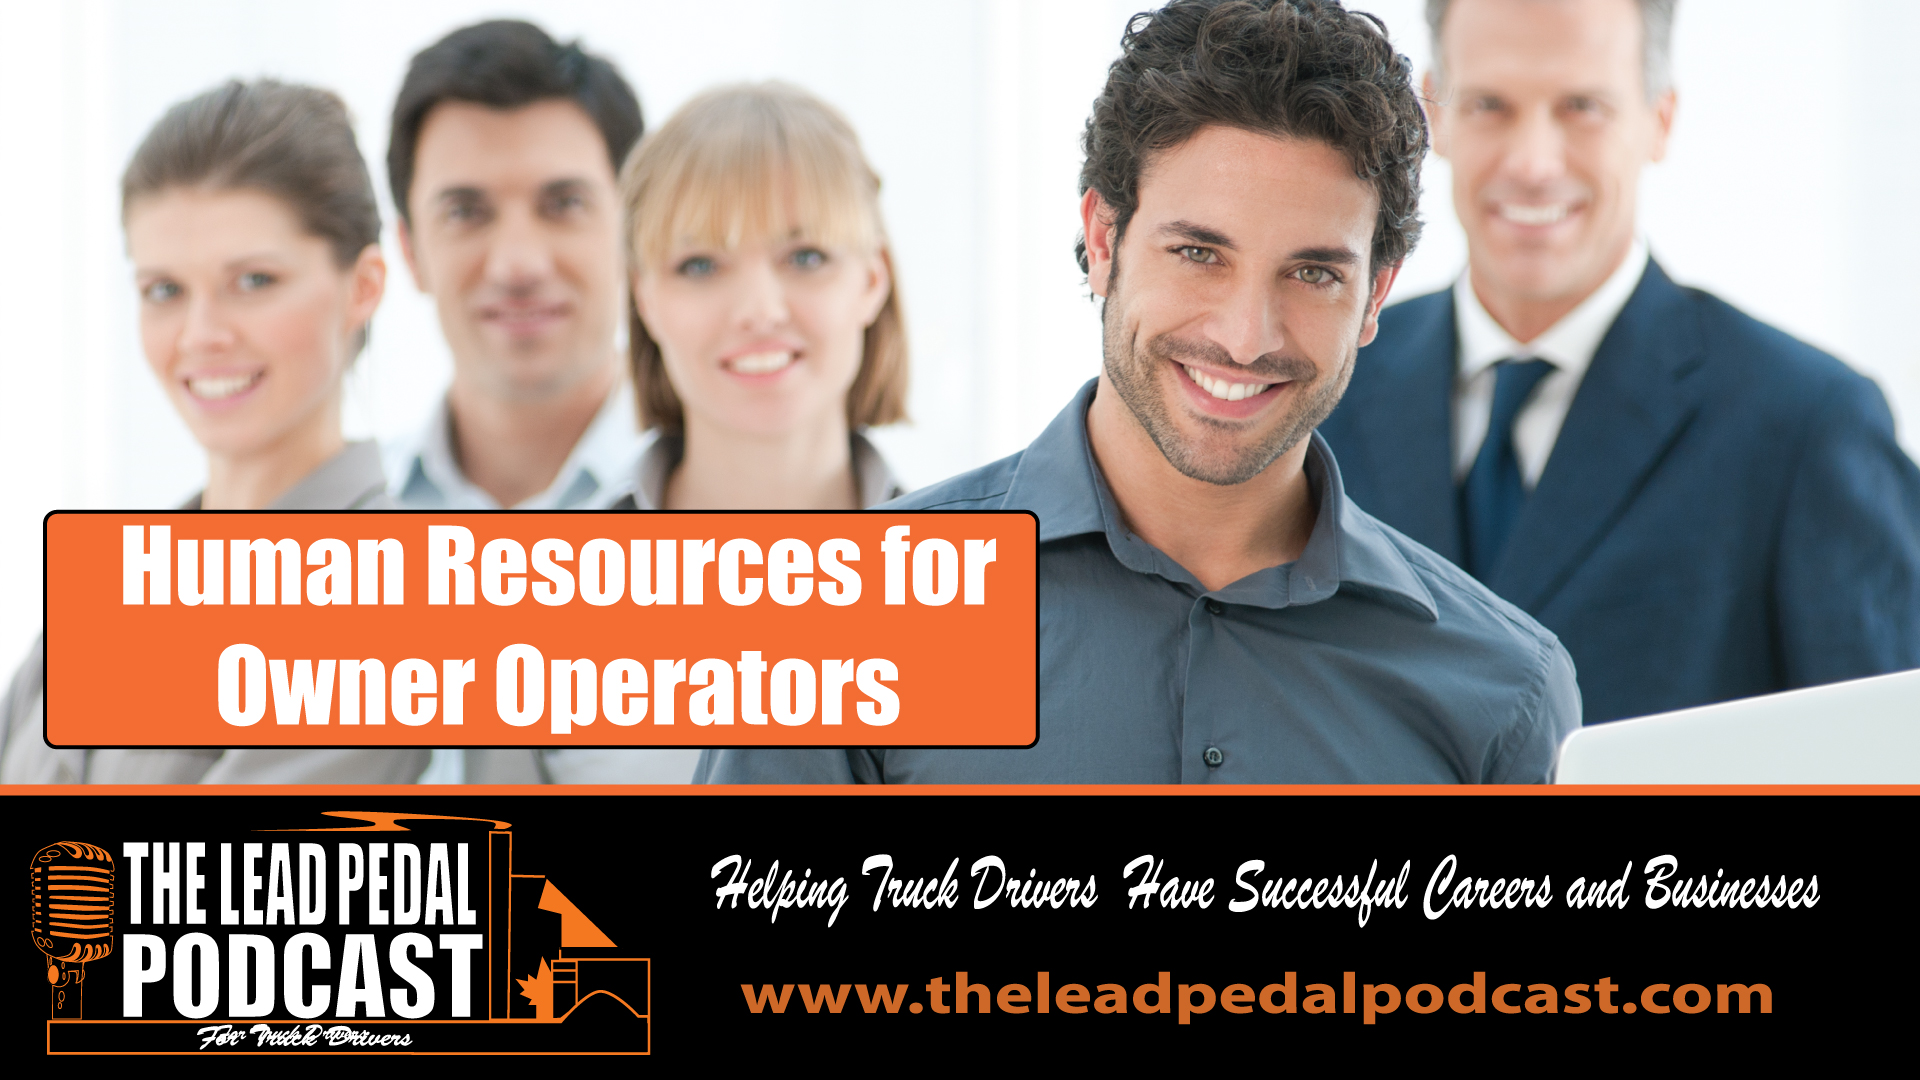 Human Resources for owner operators